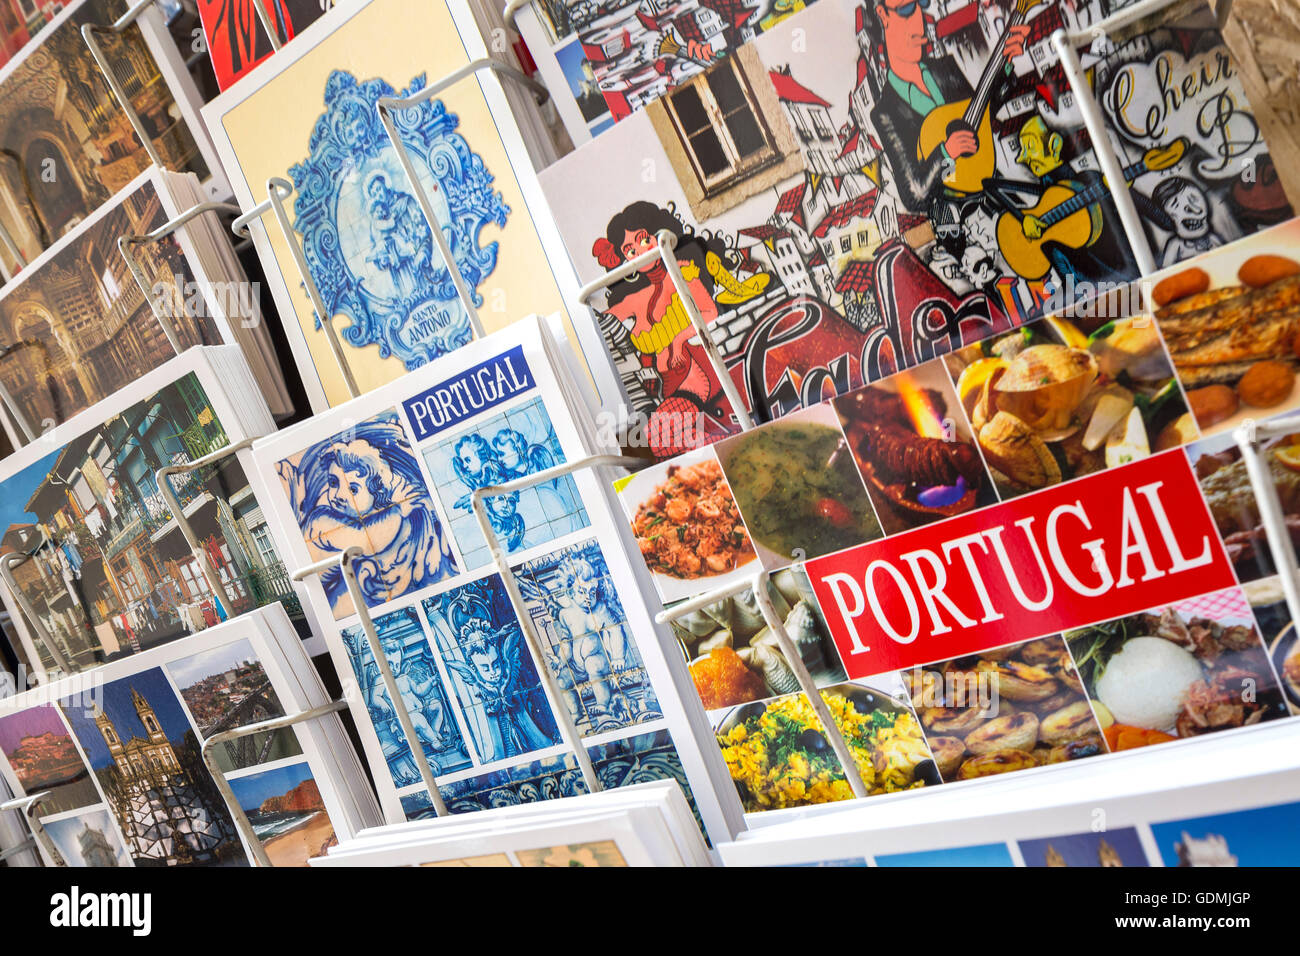 Postcards of Coimbra on a Postcard stand, Miranda do Corvo, Coimbra District, Portugal, Europe, Travel, Travel Photography - Stock Image